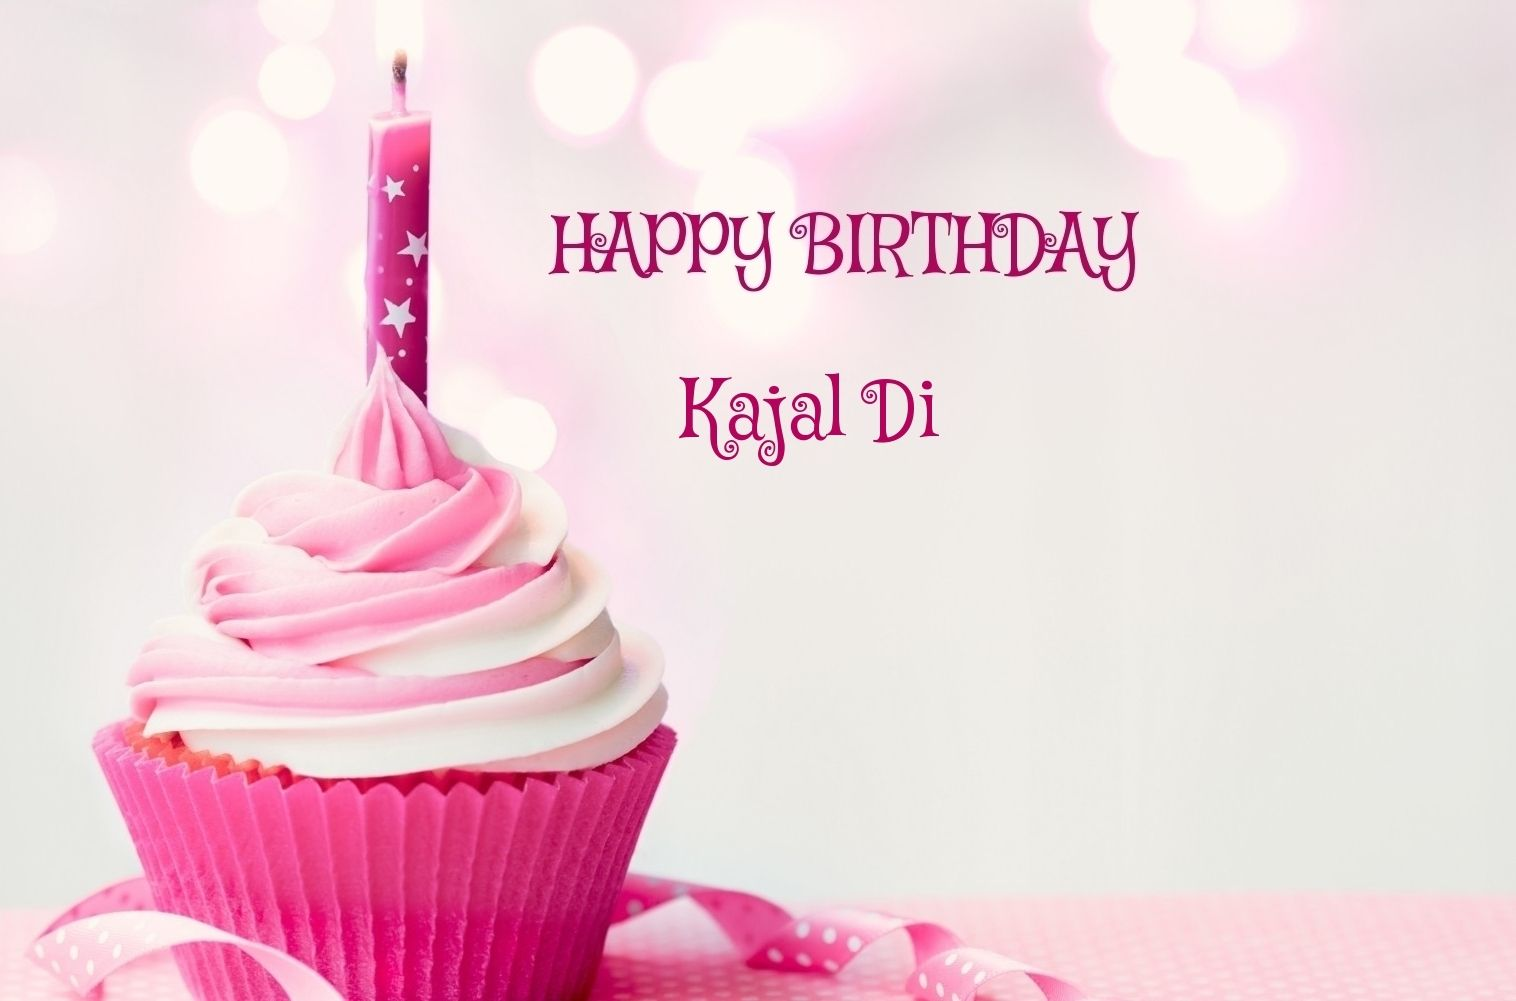 Happy Birthday Kajal - Cake Images, Wishes Quotes & SMS | Happy ...